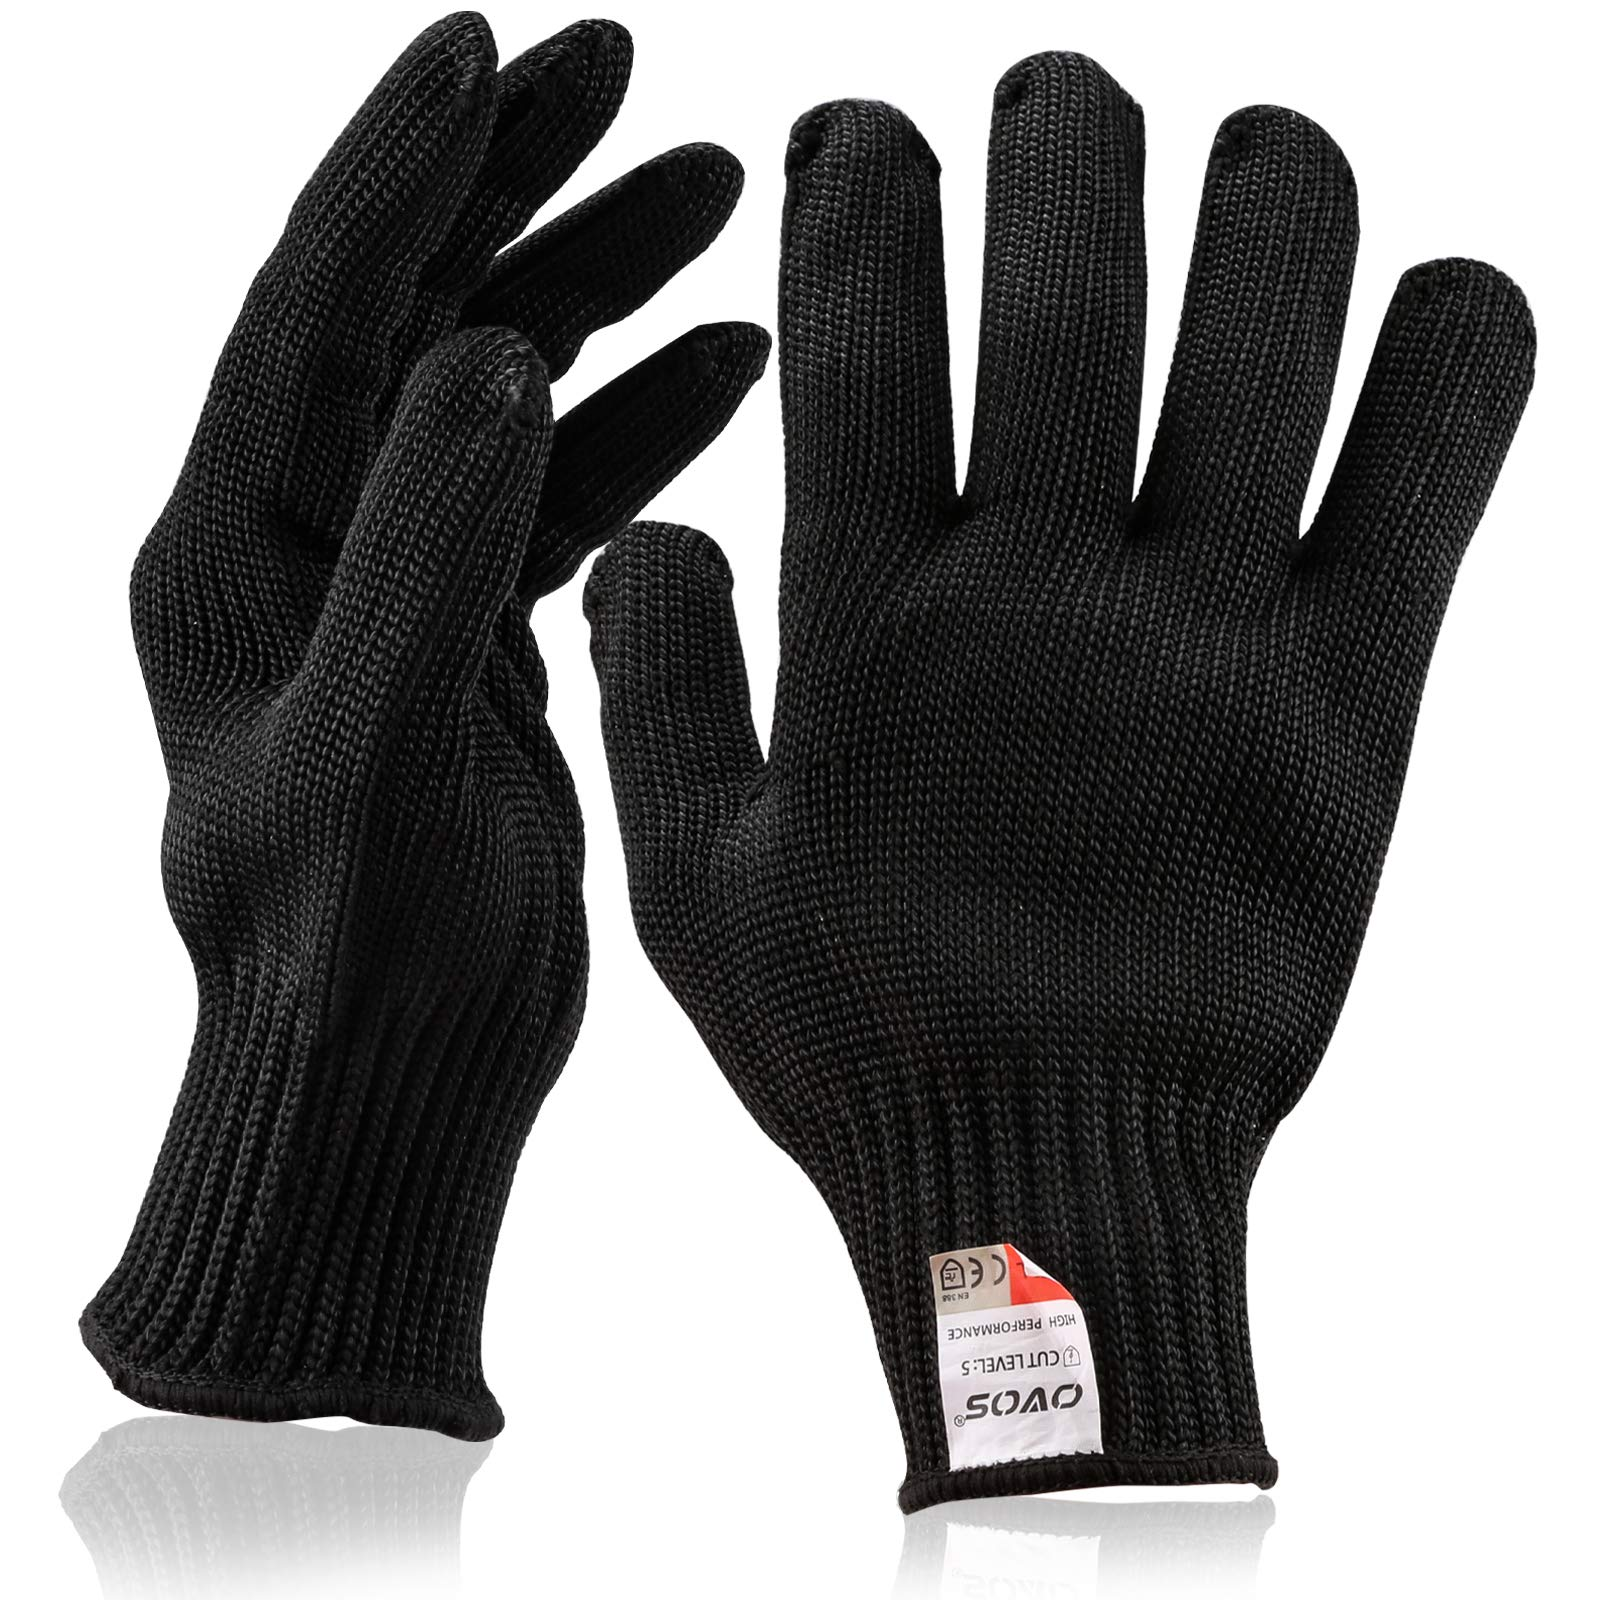 OVOS Work Gloves Stainless Steel Wire Mesh Gloves Cut Resistant, Safety Work gloves Anti-Slash Cut Static Resistance Protect Gloves - Resistant Level 5 Cut Protection